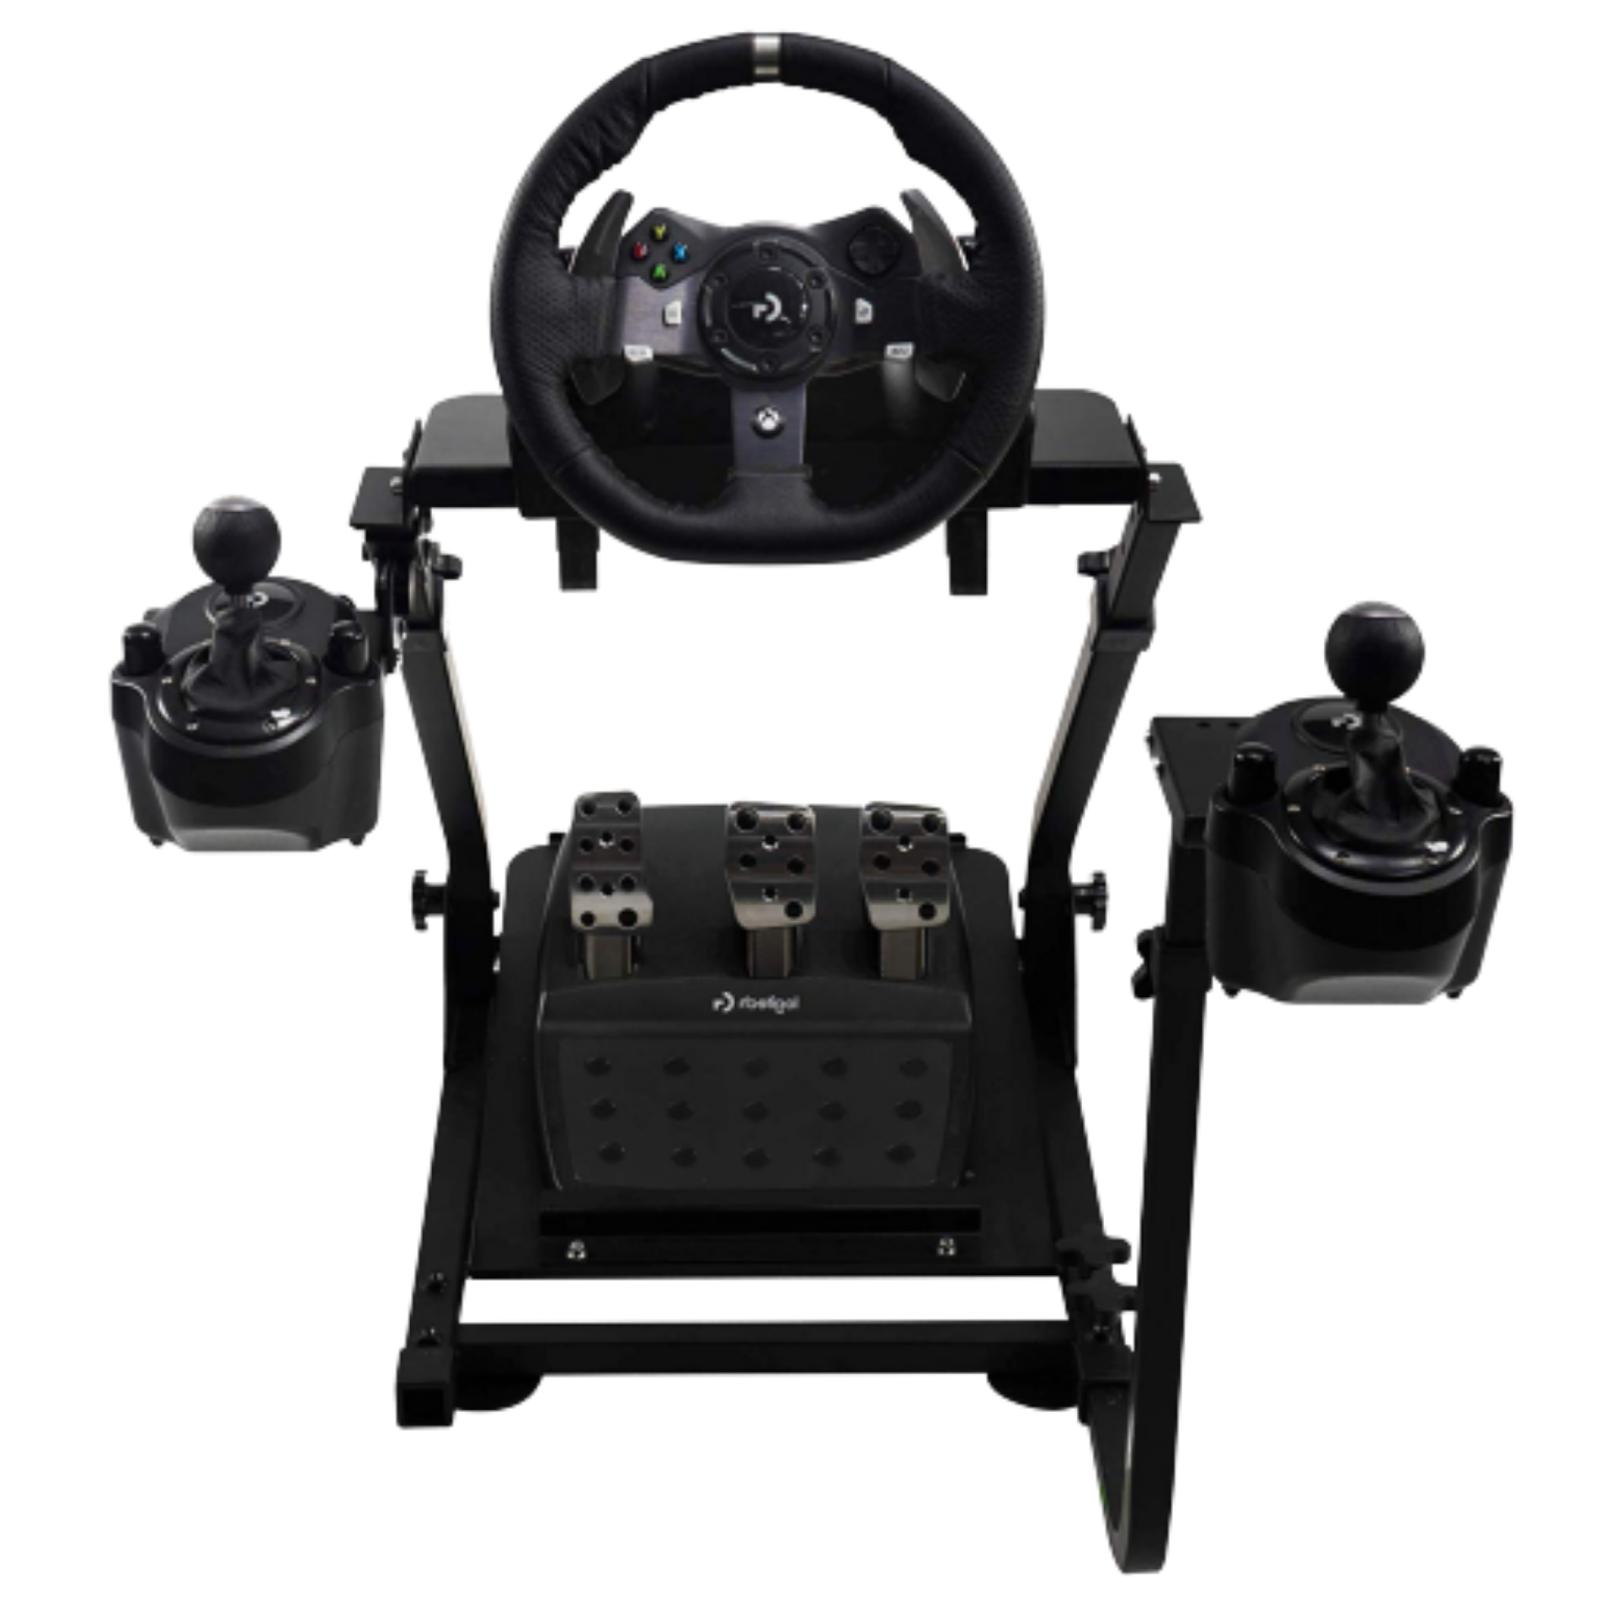 Steering Wheel Stand LOGITECH pedal racing games PS4 XBOX GT